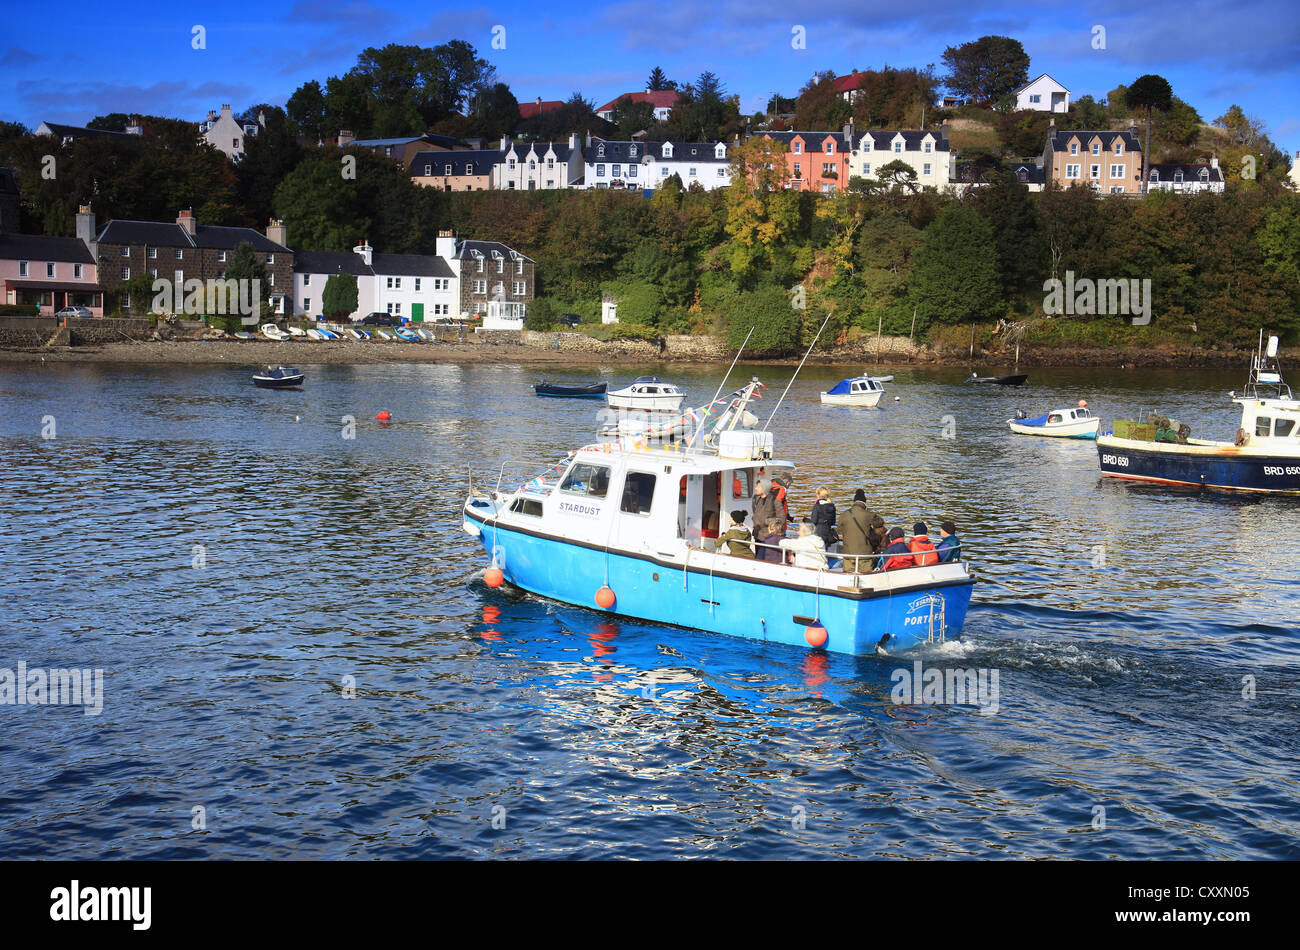 A colourful pleasure boat in the picturesque harbour of Portree on the Isle of Skye in the Scottish Highlands. - Stock Image